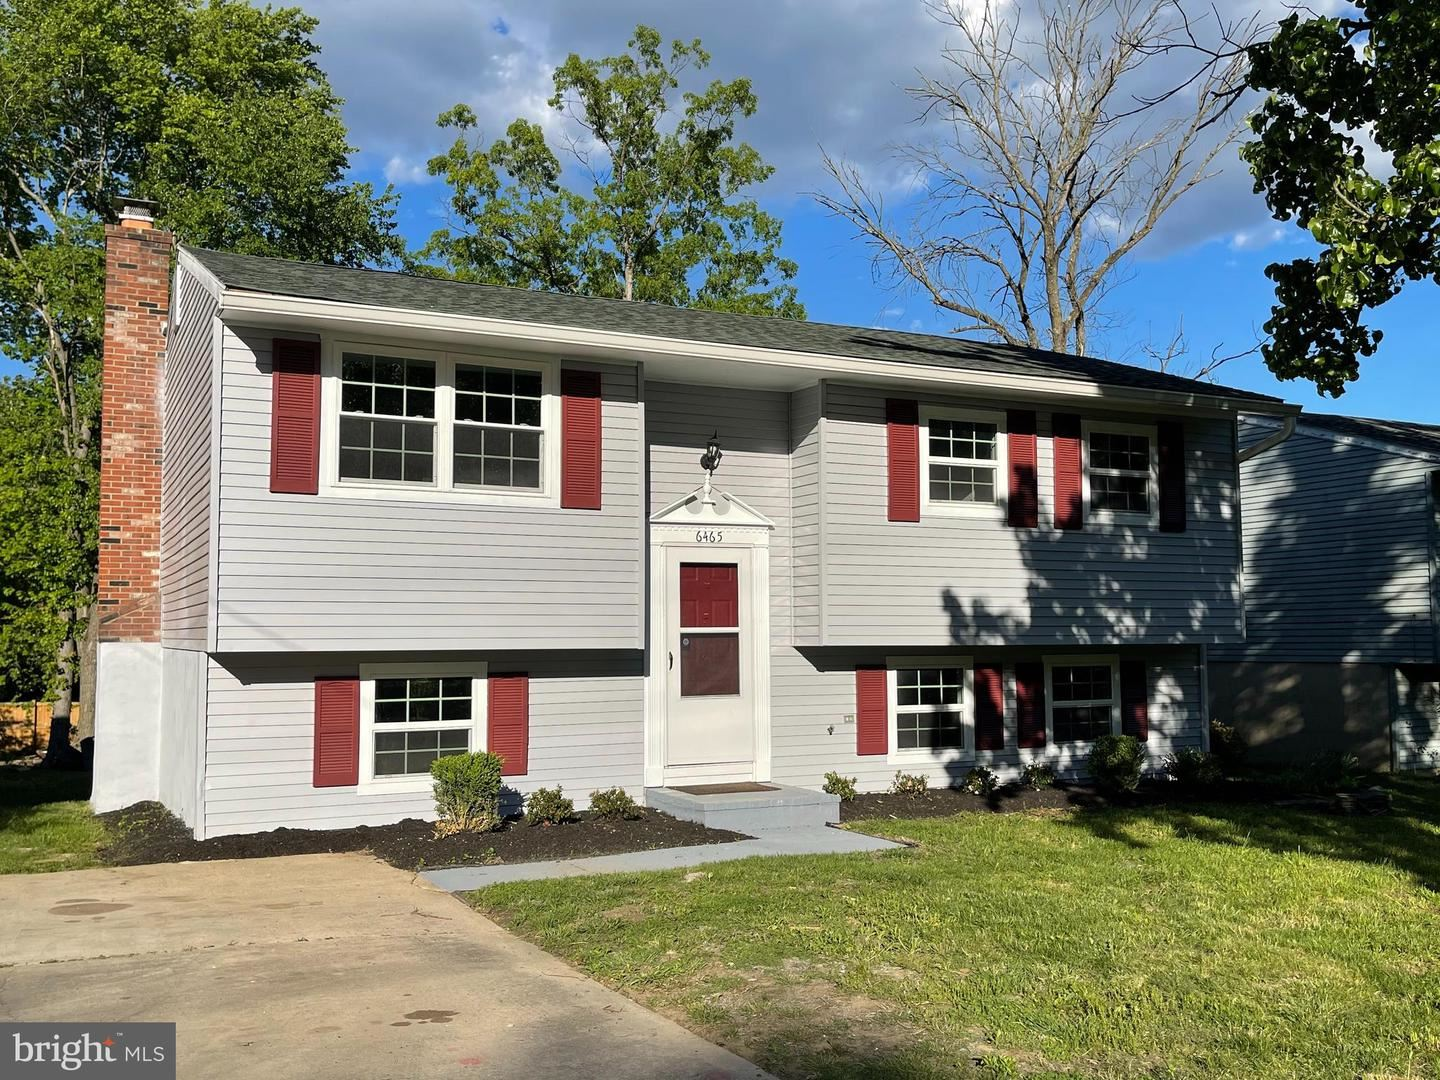 6465 ANDERSON AVE, Hanover, MD 21076 - MLS#: MDHW294492